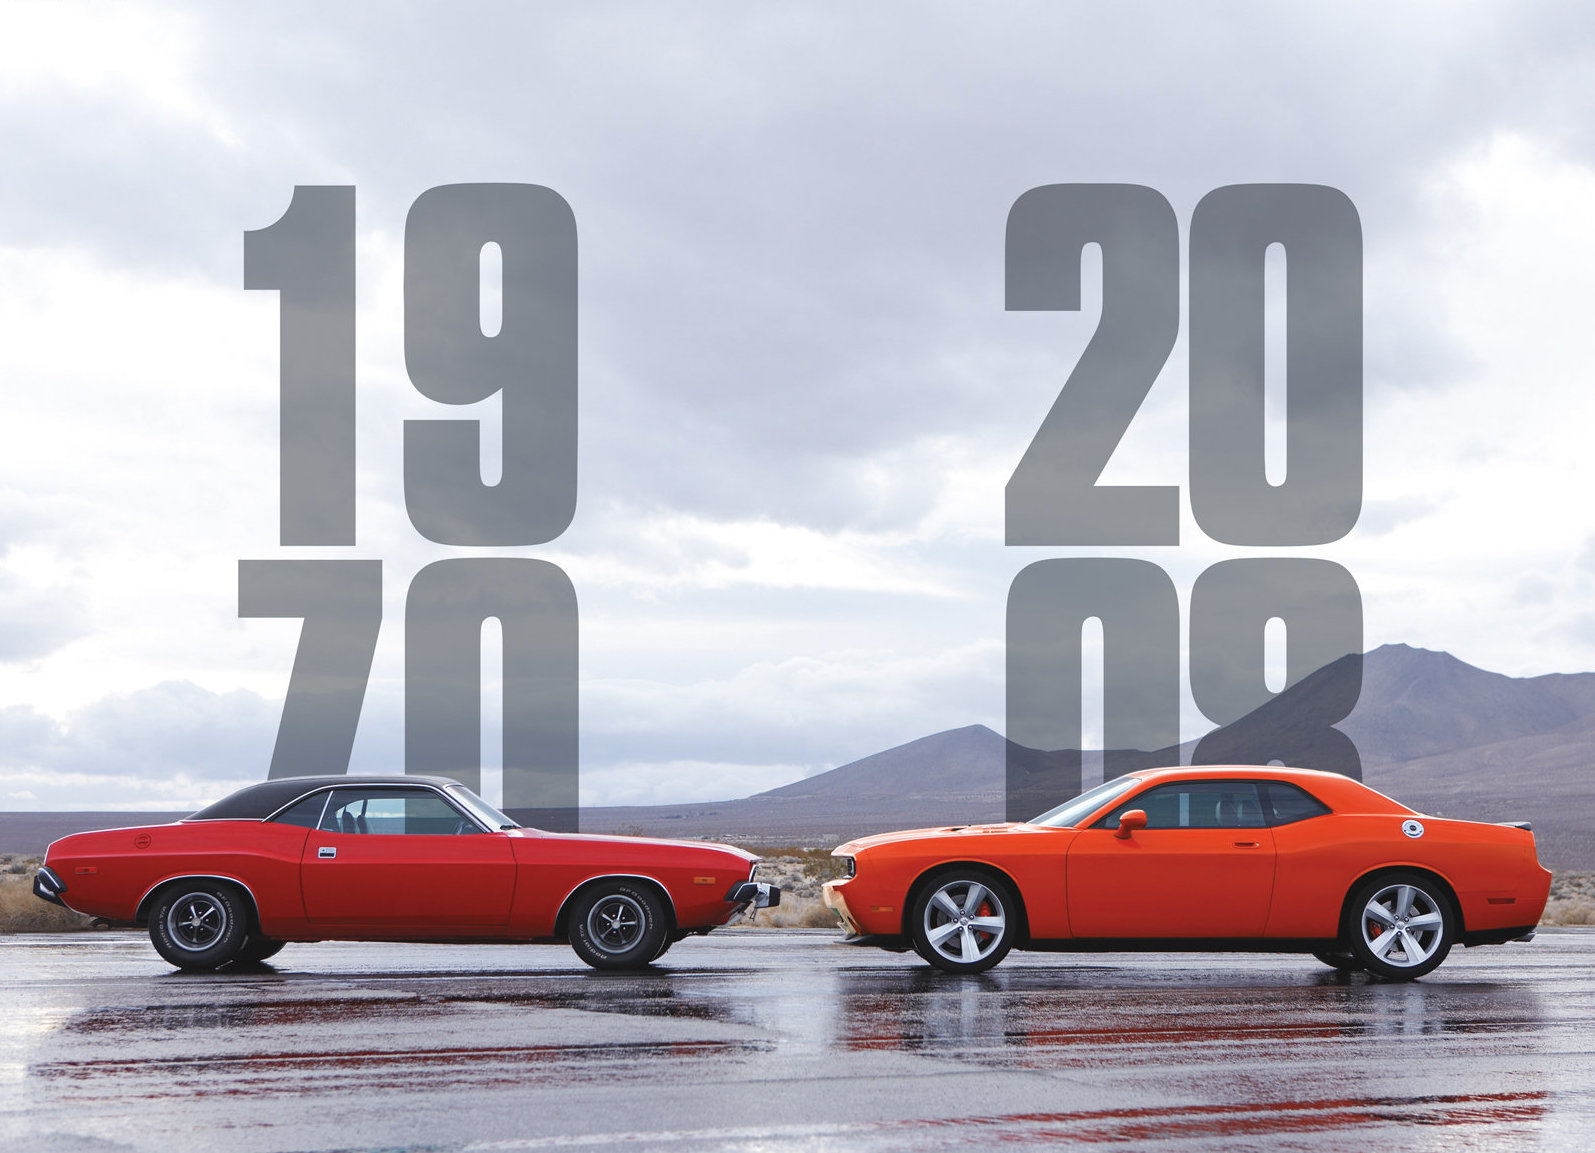 1970 & 2008 Dodge Challengers lined up